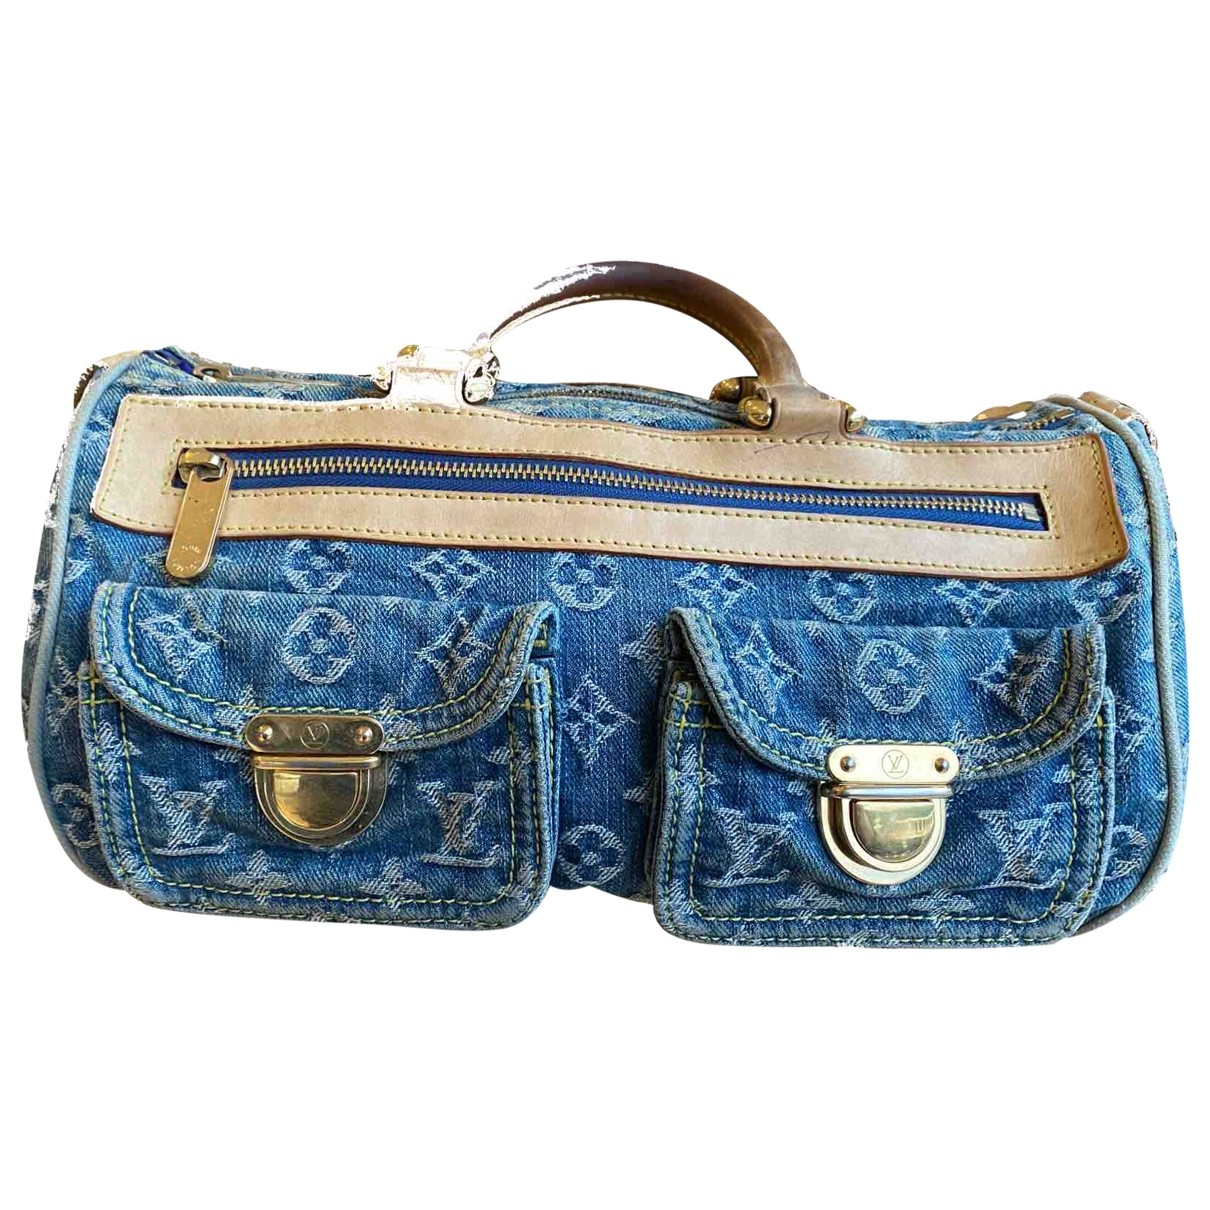 Louis Vuitton Baggy Blue Denim - Jeans handbag for Women \N